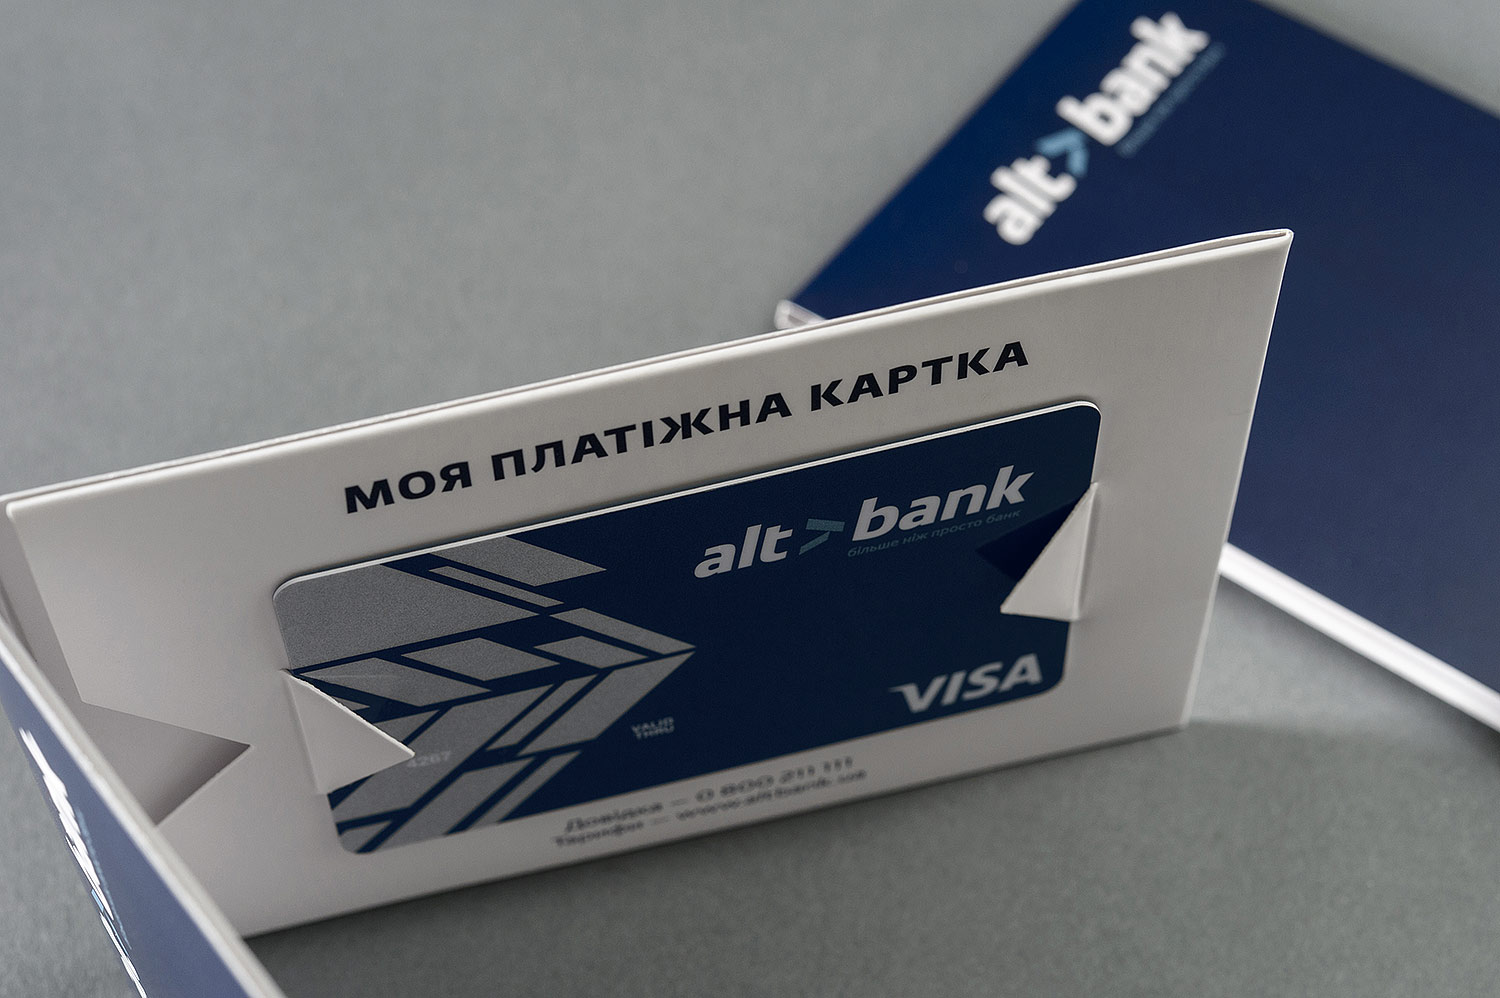 Cardholder for the Altbank payment card. Payment card design, VISA Classic debit card.